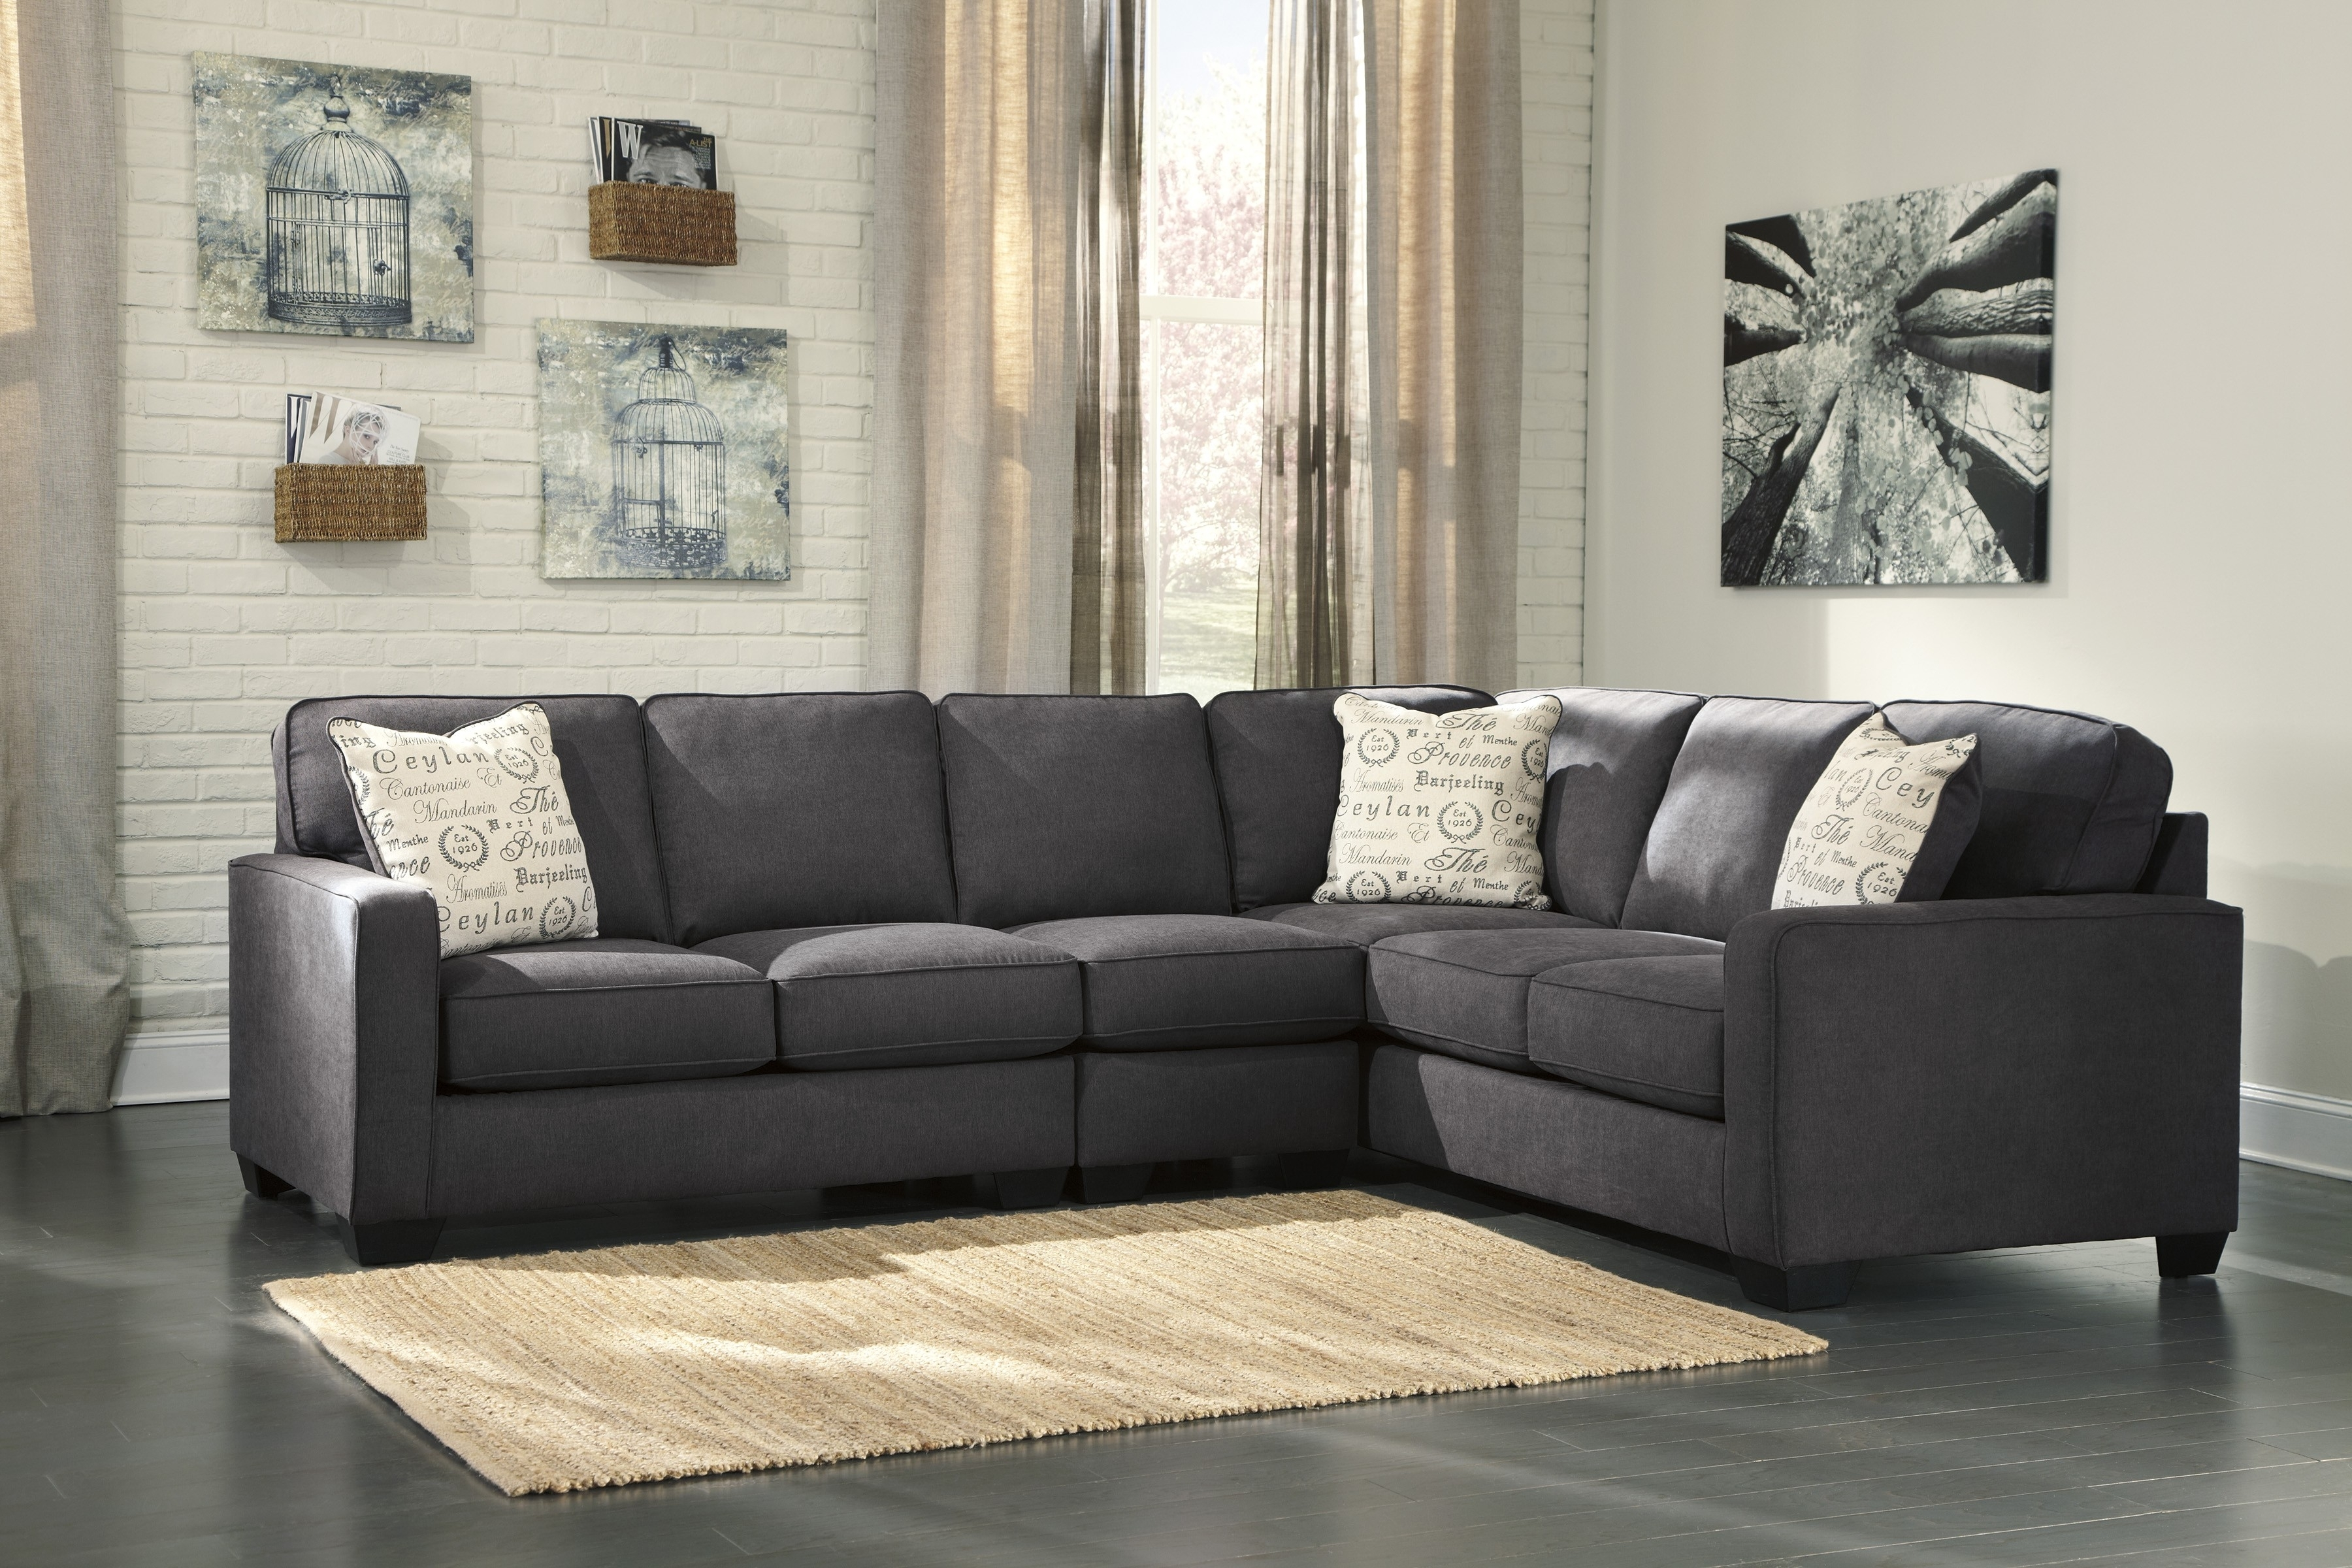 Alenya Charcoal 16601 3 Pc Sectional With Regard To Sierra Foam Ii 3 Piece Sectionals (Image 2 of 25)